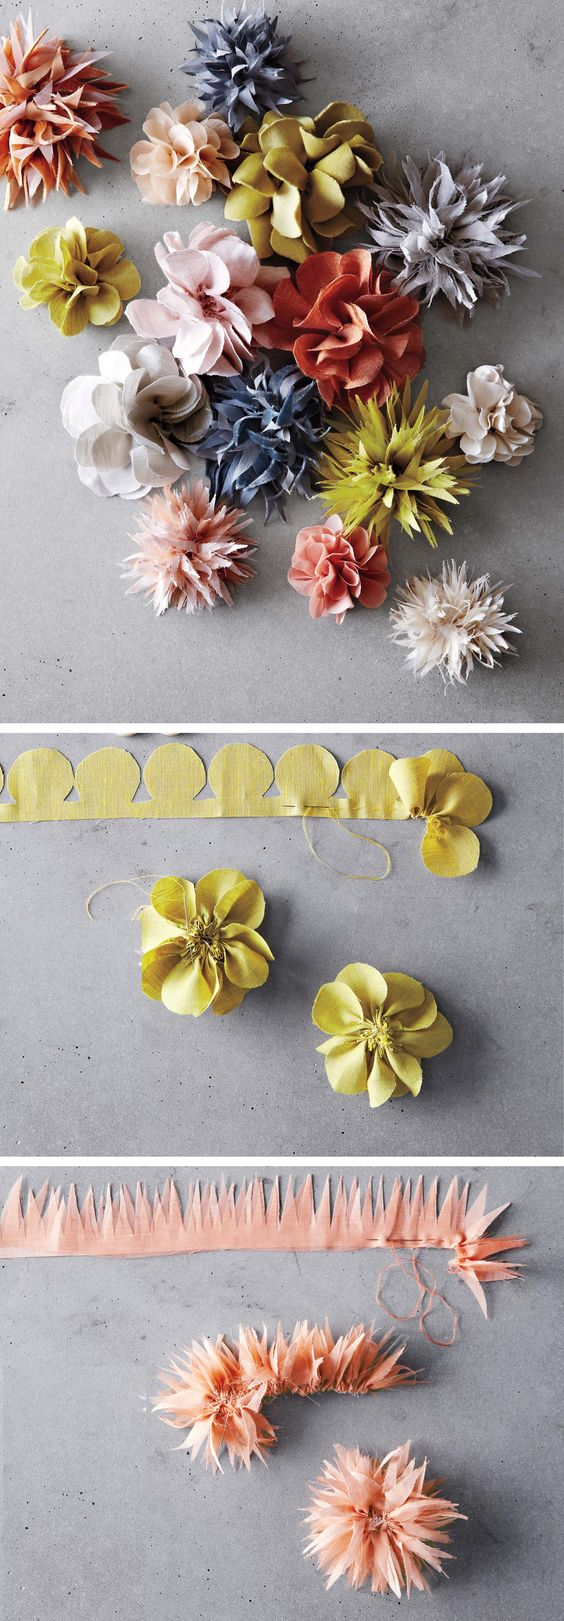 DIY Fabric Flowers - how gorgeous!: